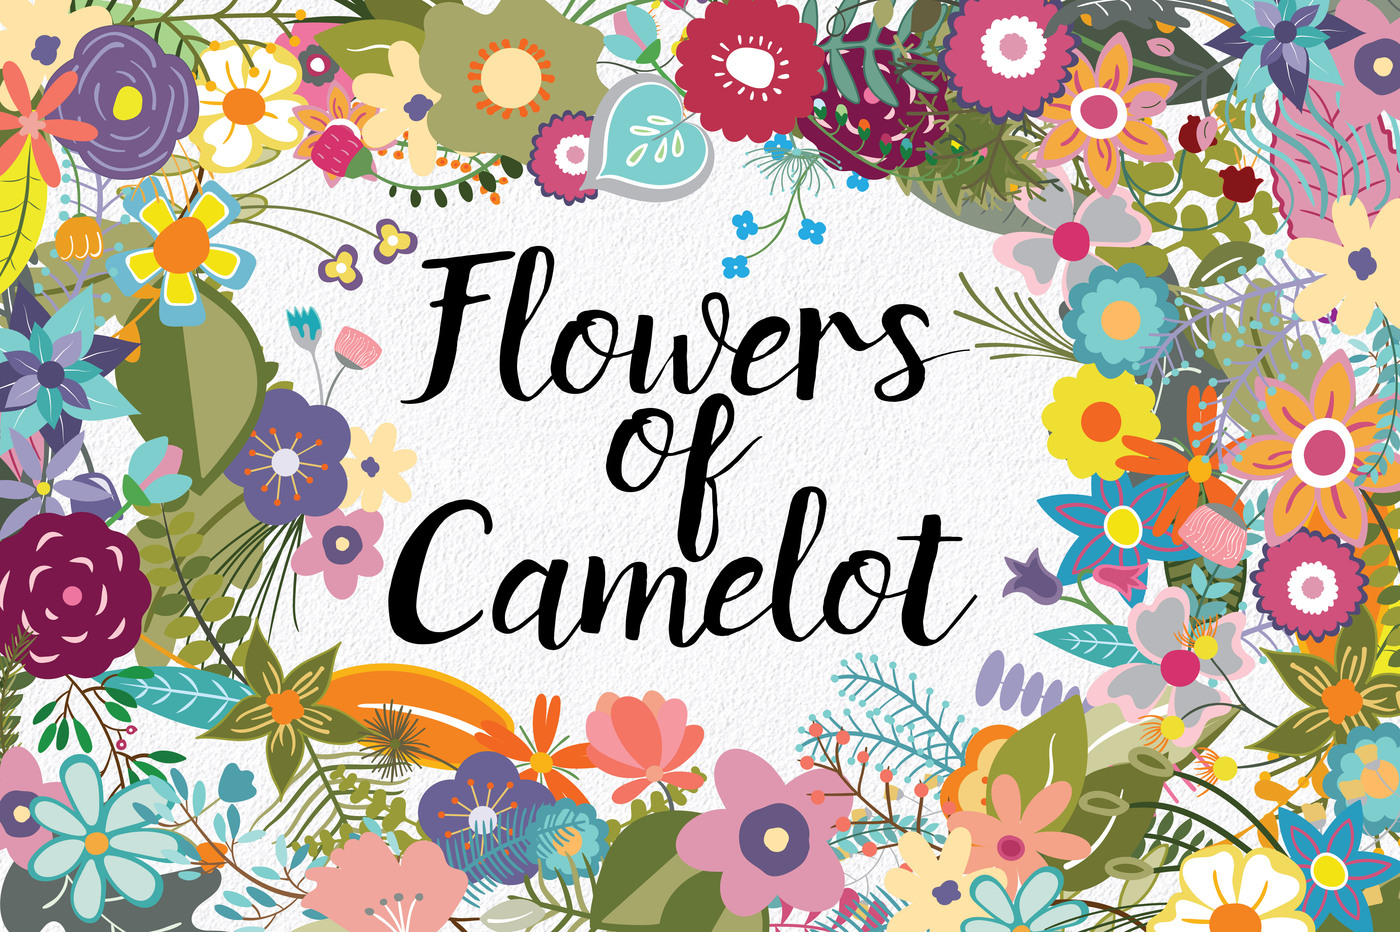 Camelot clipart #1, Download drawings